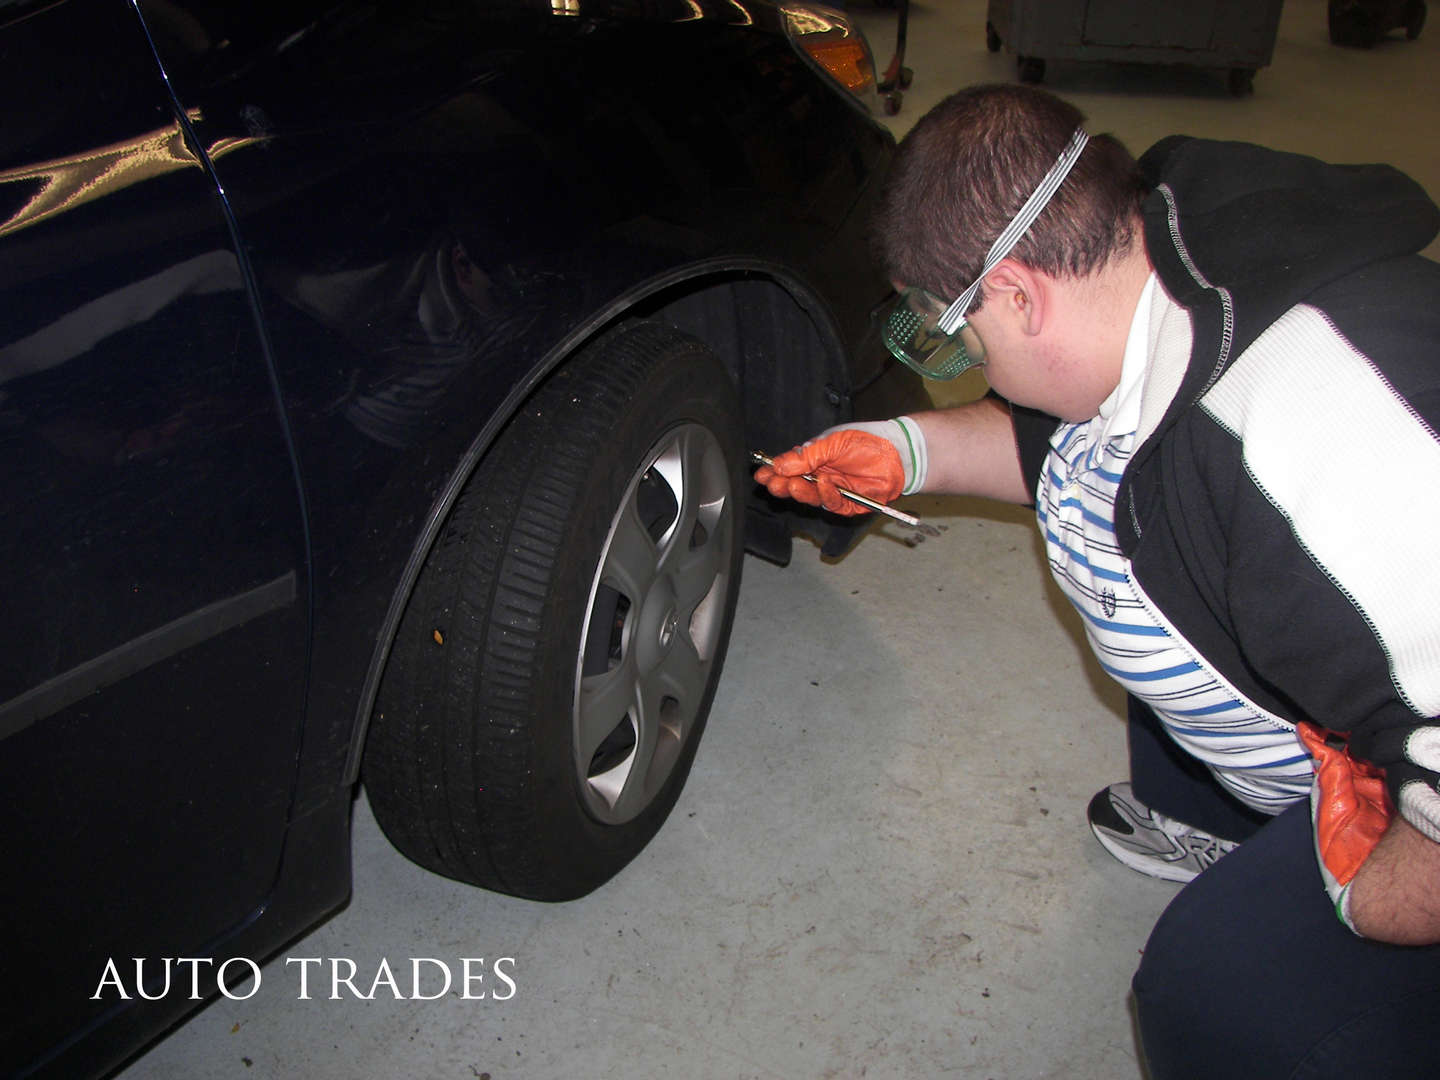 An automotive student works on a car tire